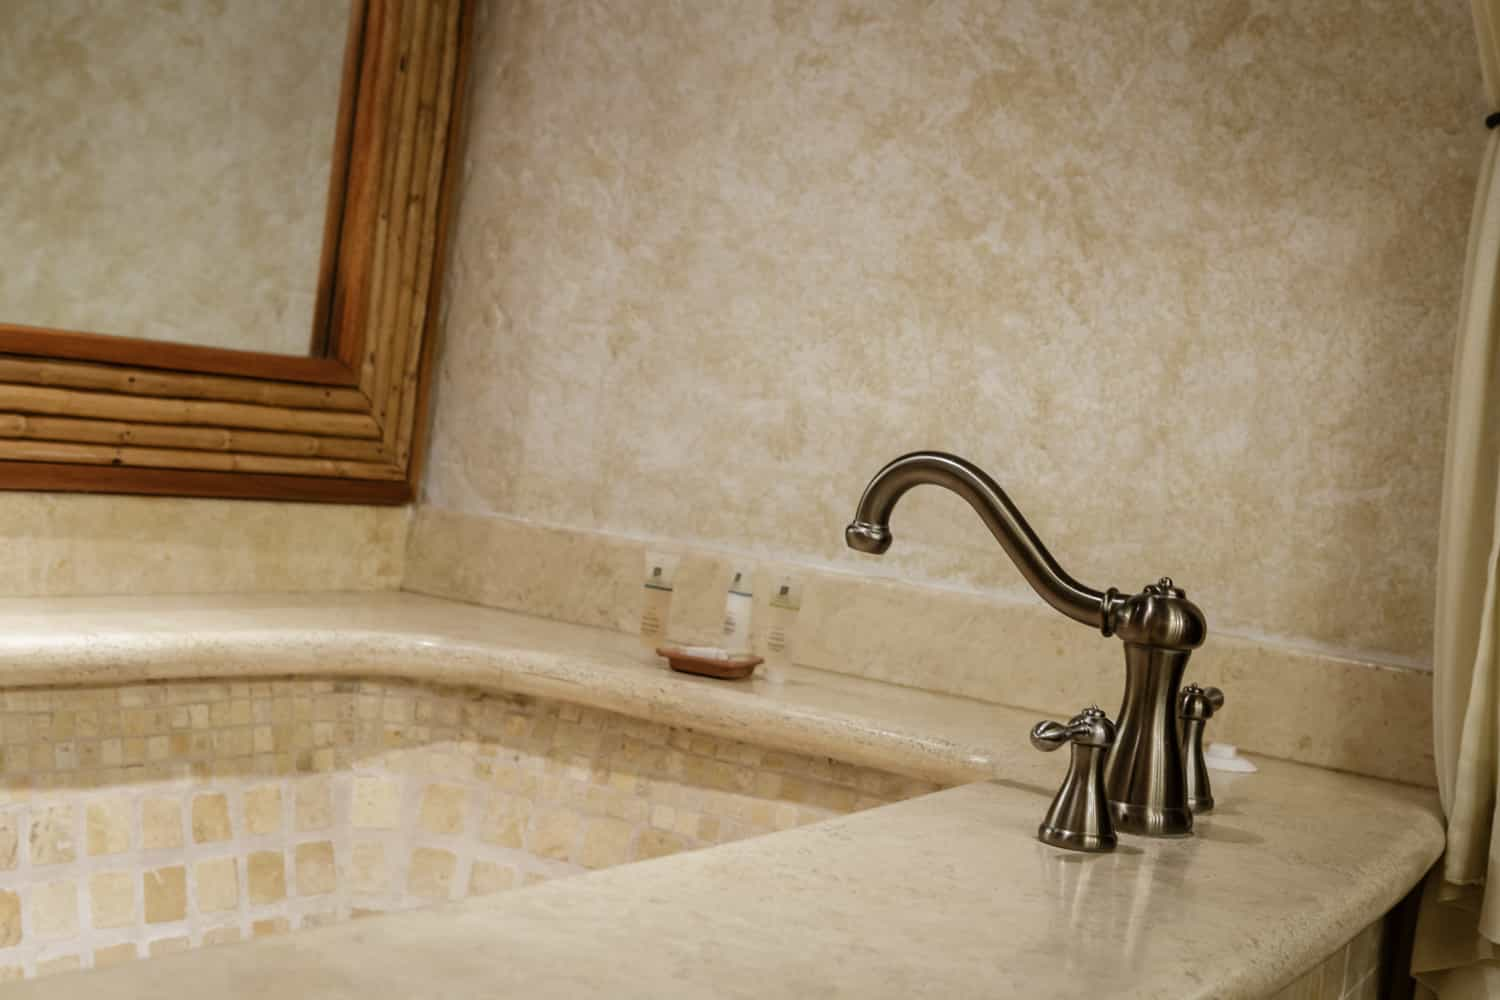 Natural stone jacuzzi tub in guest room bathroom.